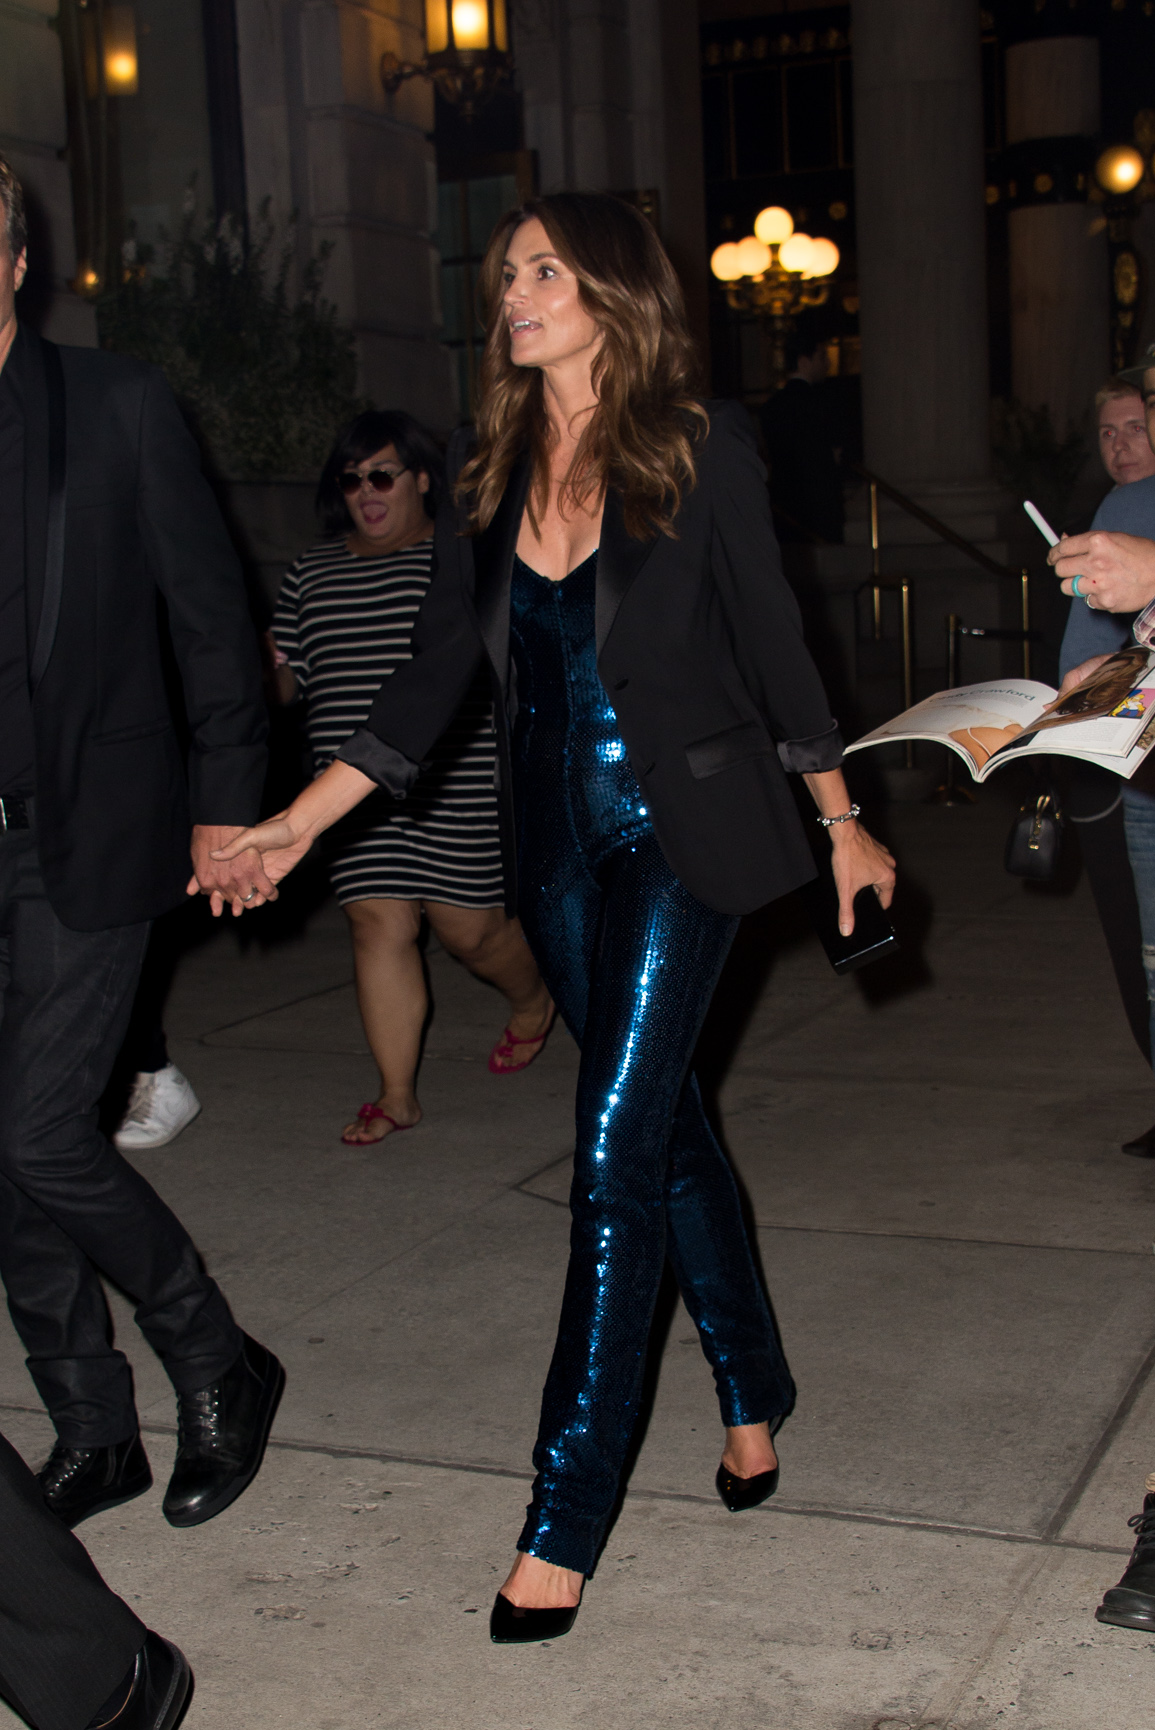 Celebrities spotted leaving the Harper's Bazaar Icons Party in New York City, New York. <P> Pictured: Coindy Crawford <B>Ref: SPL1572727  080917  </B><BR/> Picture by: Matt Brandt / Splash News<BR/> </P><P> <B>Splash News and Pictures</B><BR/> Los Angeles:310-821-2666<BR/> New York:212-619-2666<BR/> London:870-934-2666<BR/> <span id=